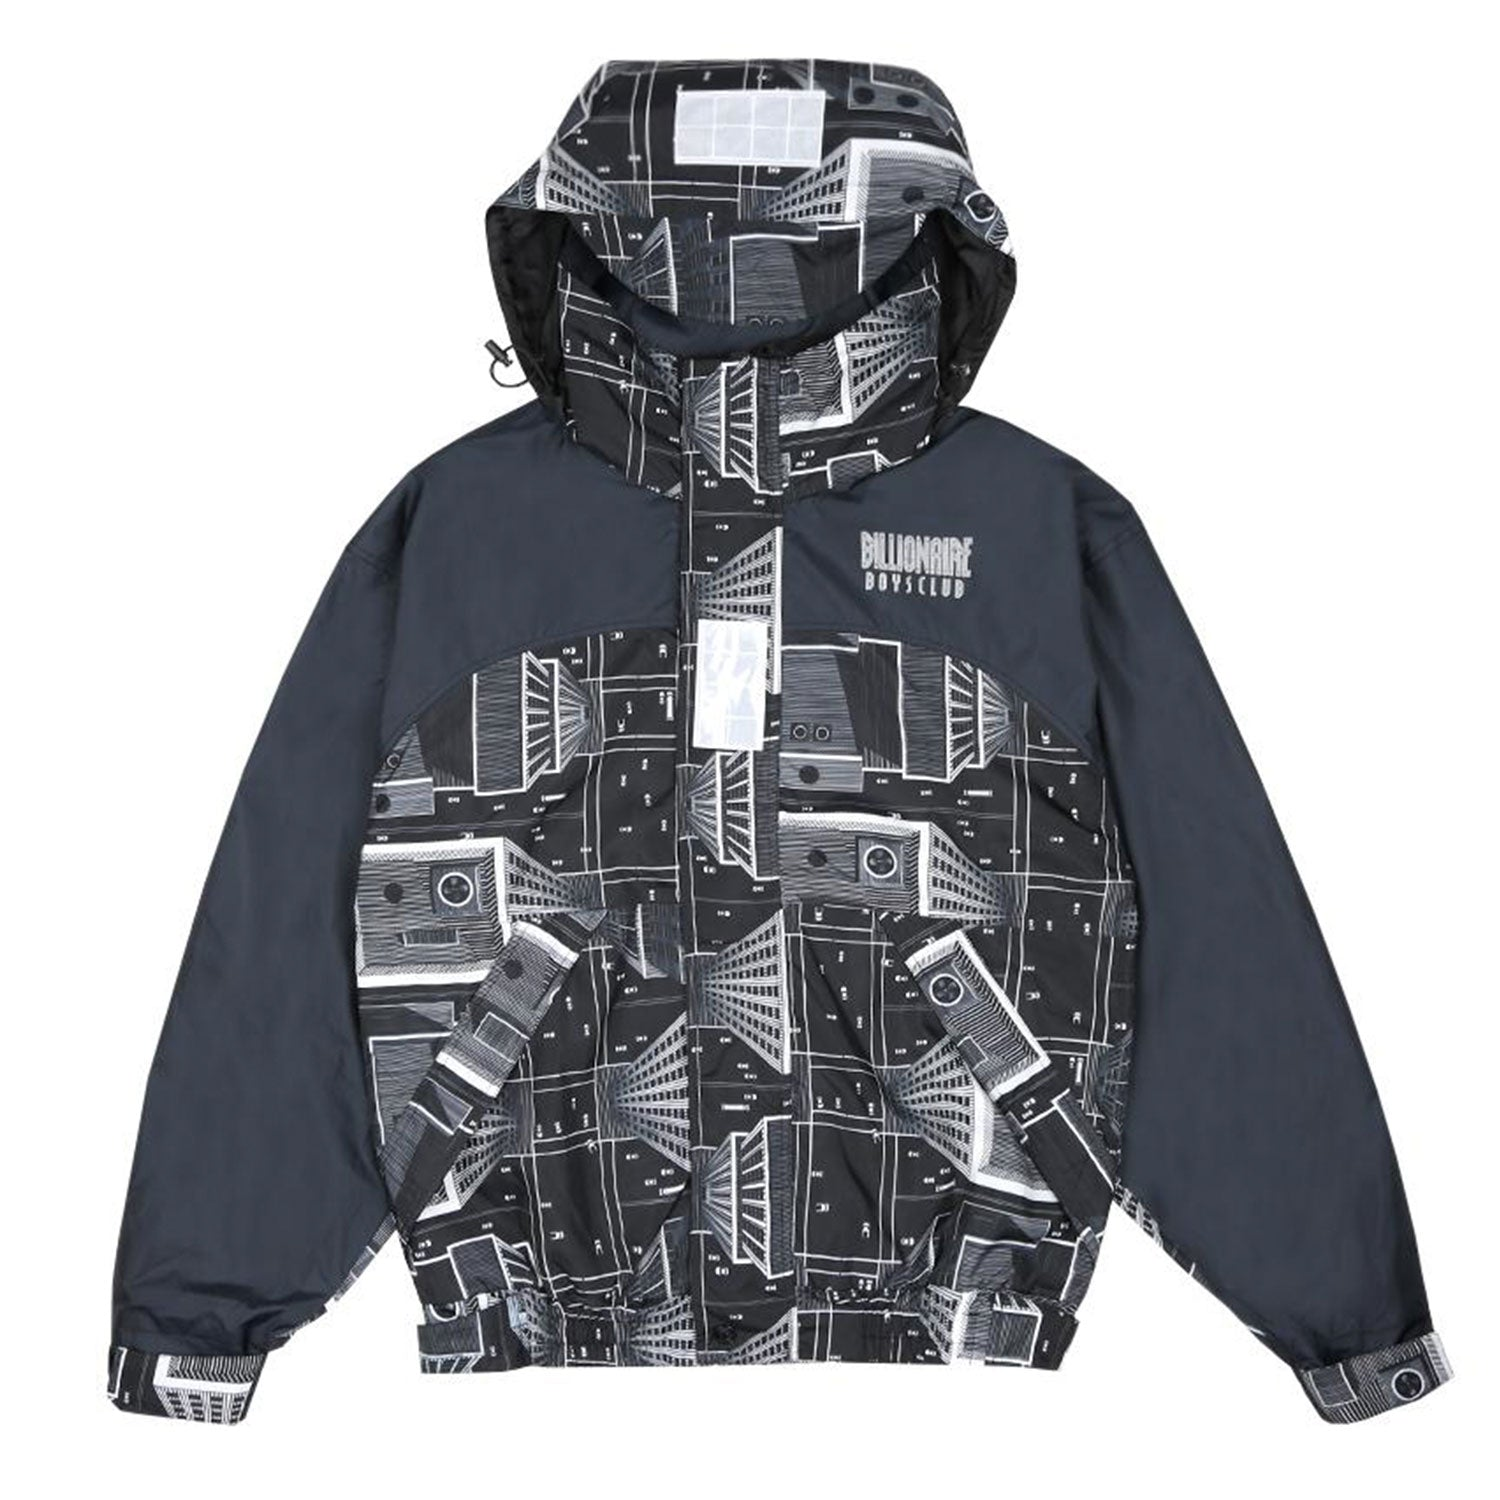 SKYSCRAPER SAILING JACKET